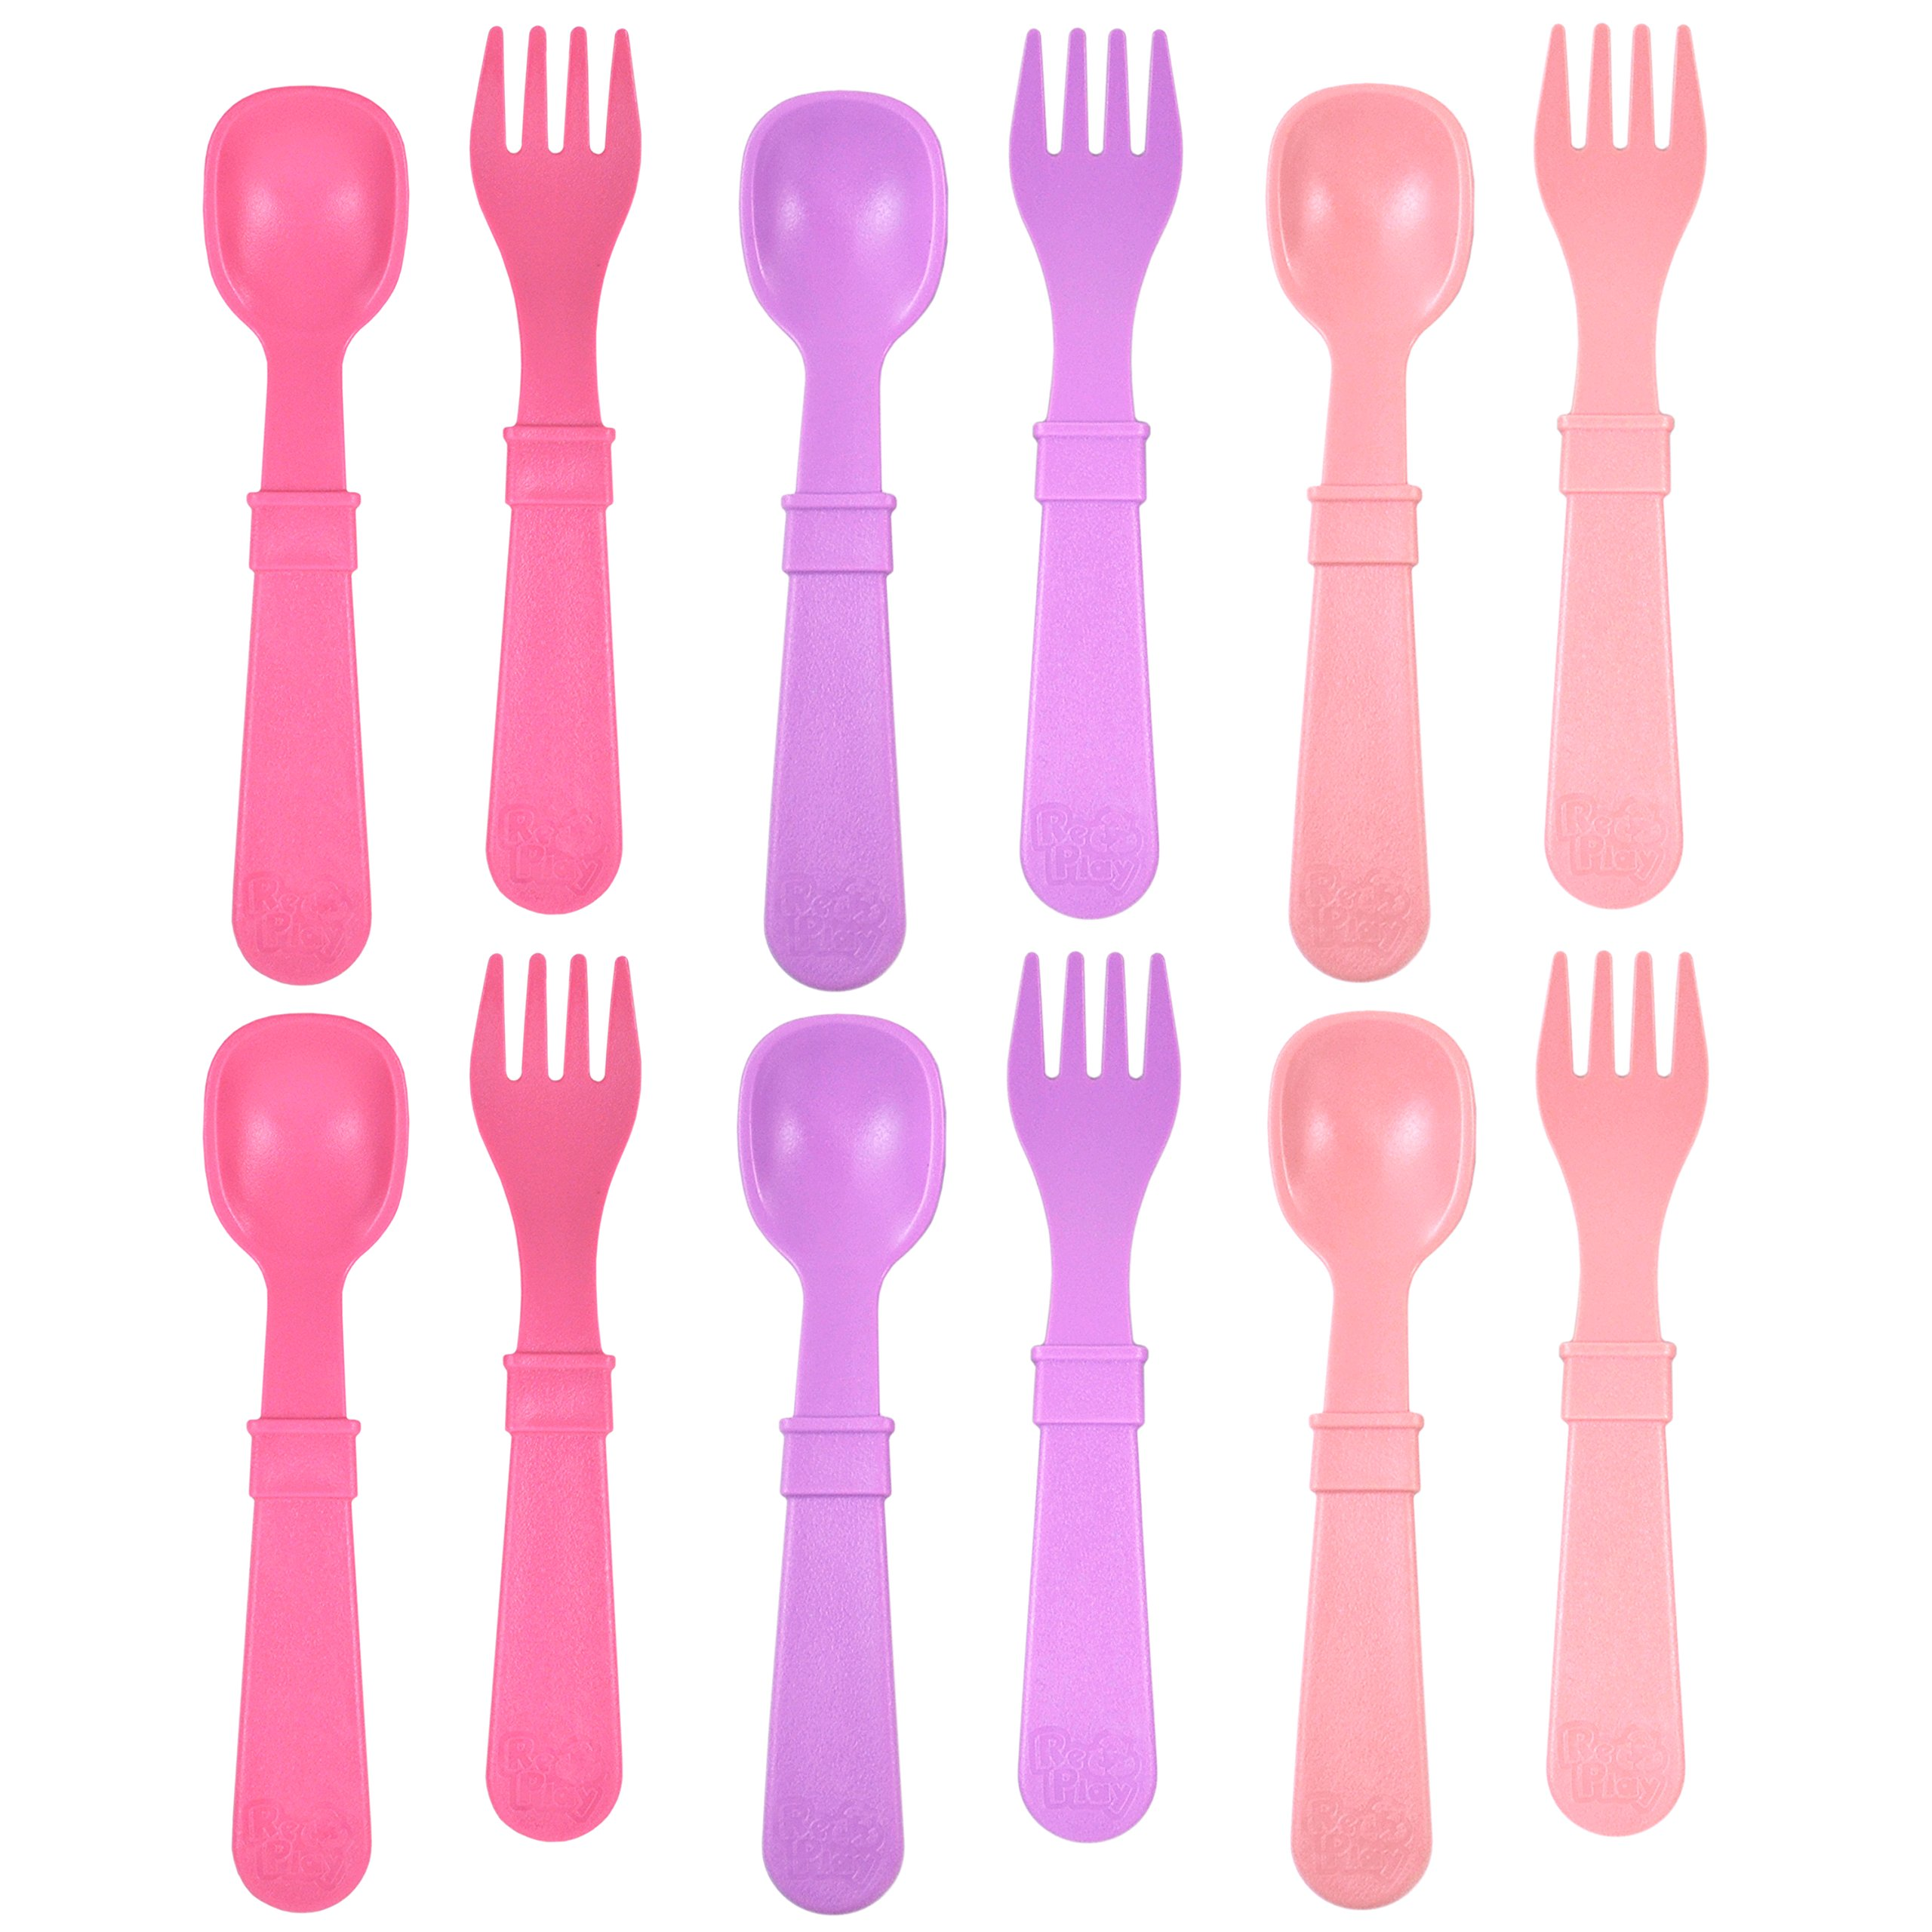 RE-PLAY Made in The USA 12pk Fork and Spoon Utensil Set for Easy Baby, Toddler, and Child Feeding in Purple, Blush and Bright Pink   Made from Eco Friendly Heavyweight Recycled Milk Jugs   (Princess)